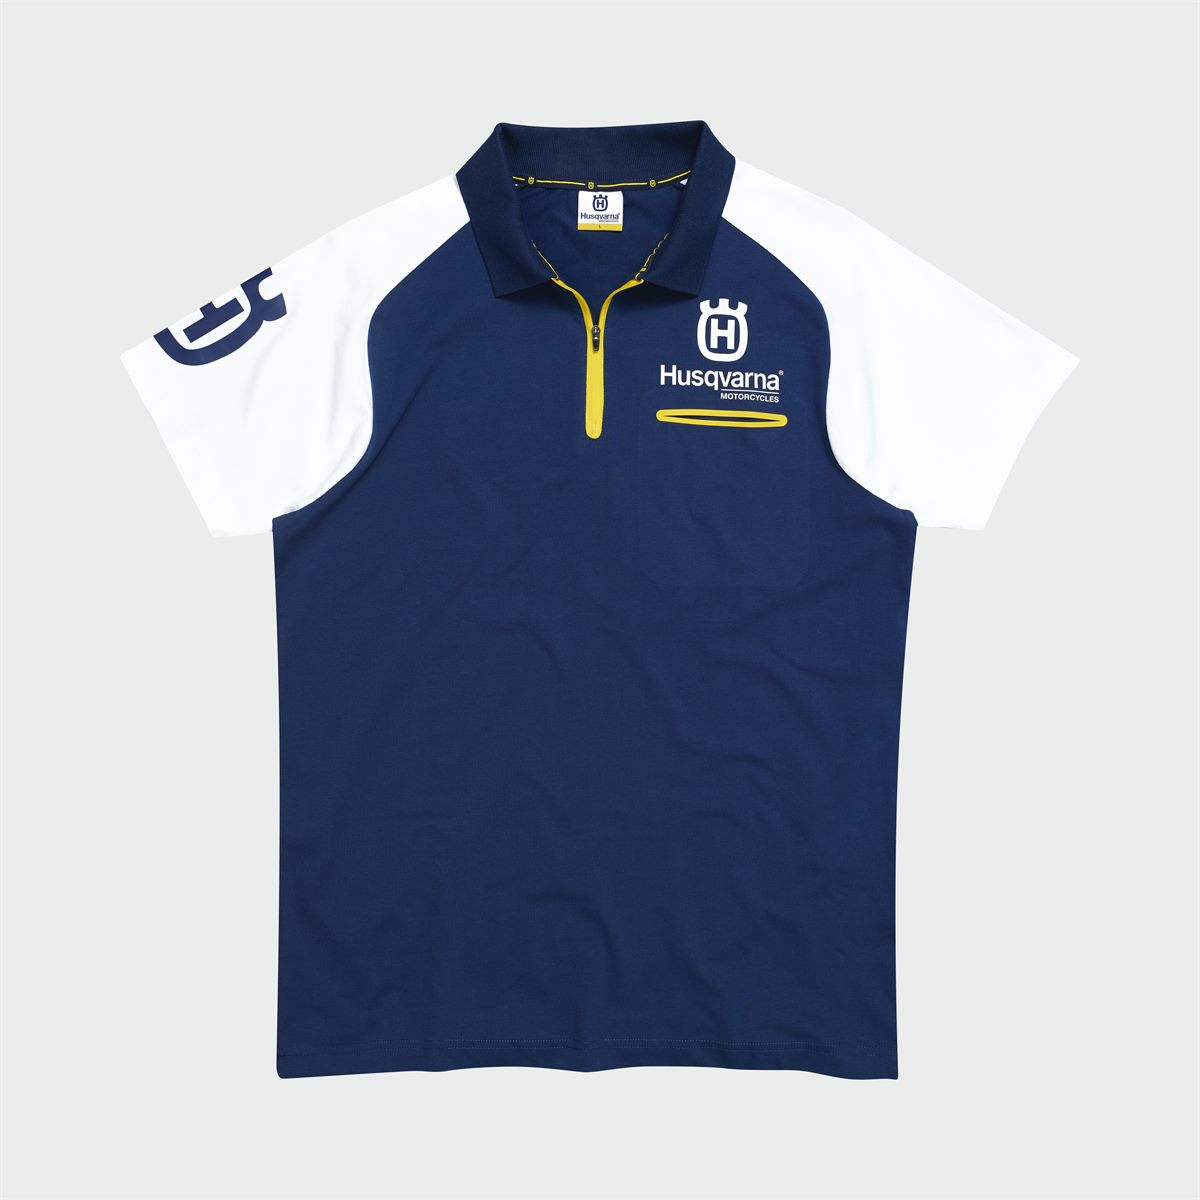 2019 HUSQVARNA REPLICA TEAM WEAR - REPLICA TEAM POLO FRONT